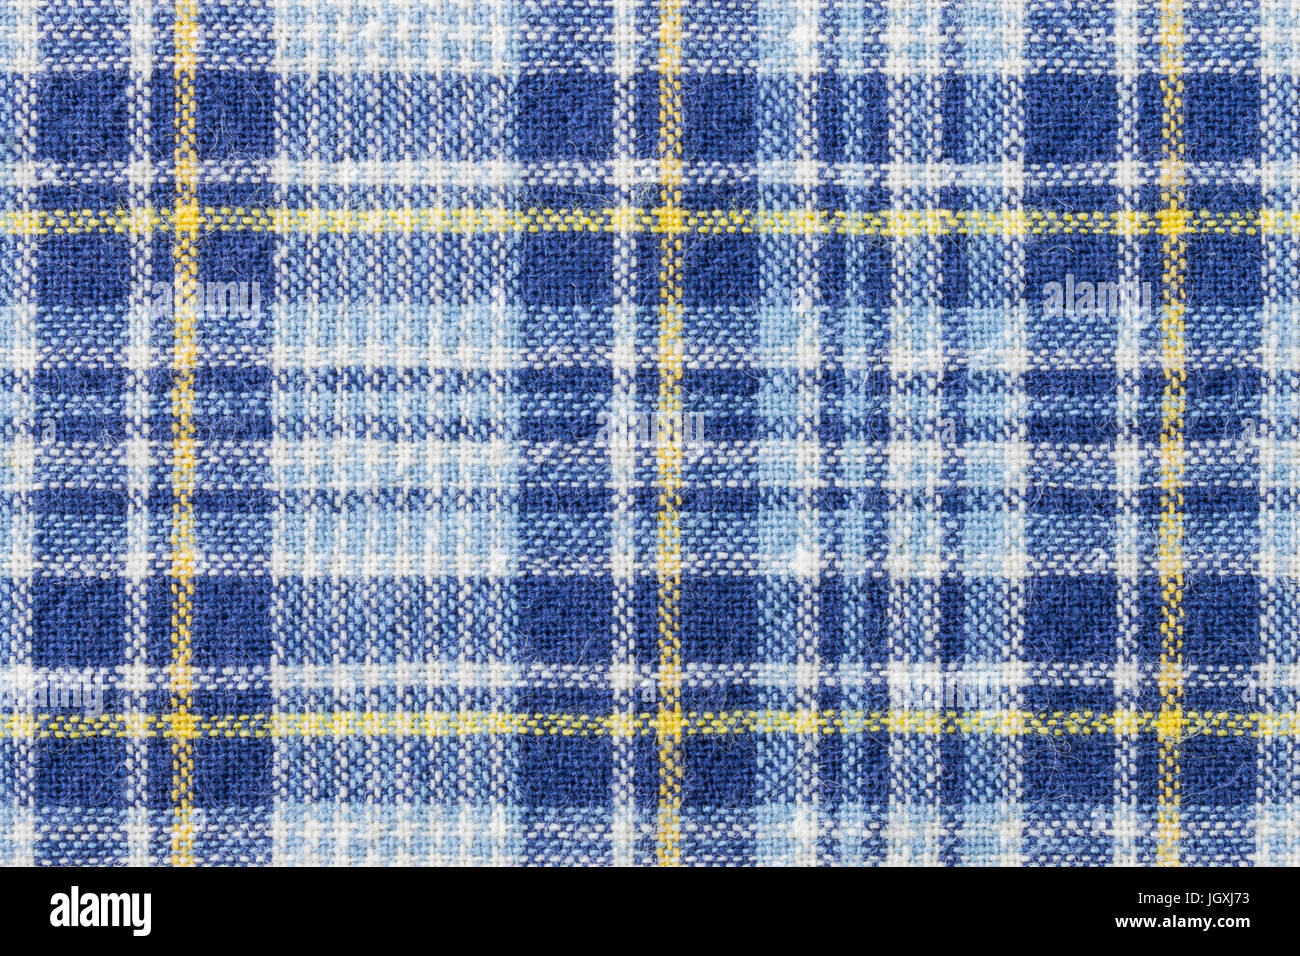 Blue and yellow tartan or plaid background for fashion design. Tartan or plaid pattern. Tartan or plaid background, - Stock Image